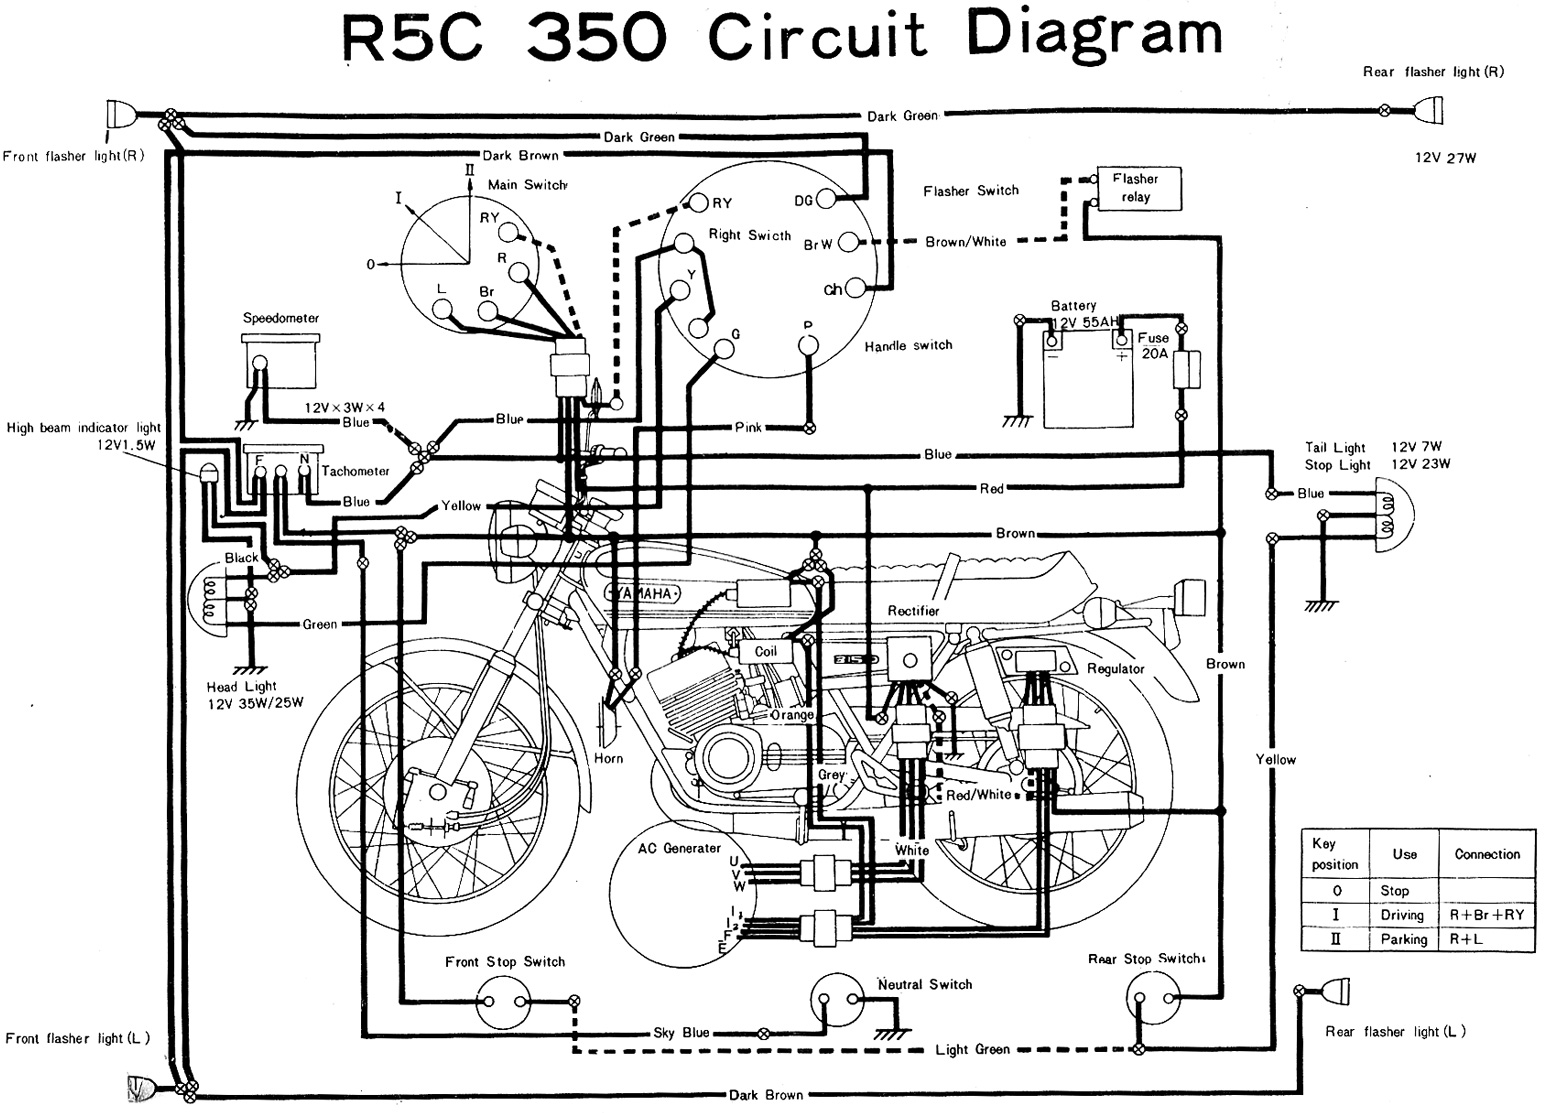 Astonishing Wiring Diagram For Motorcycle Wiring Diagram Database Wiring Digital Resources Cettecompassionincorg